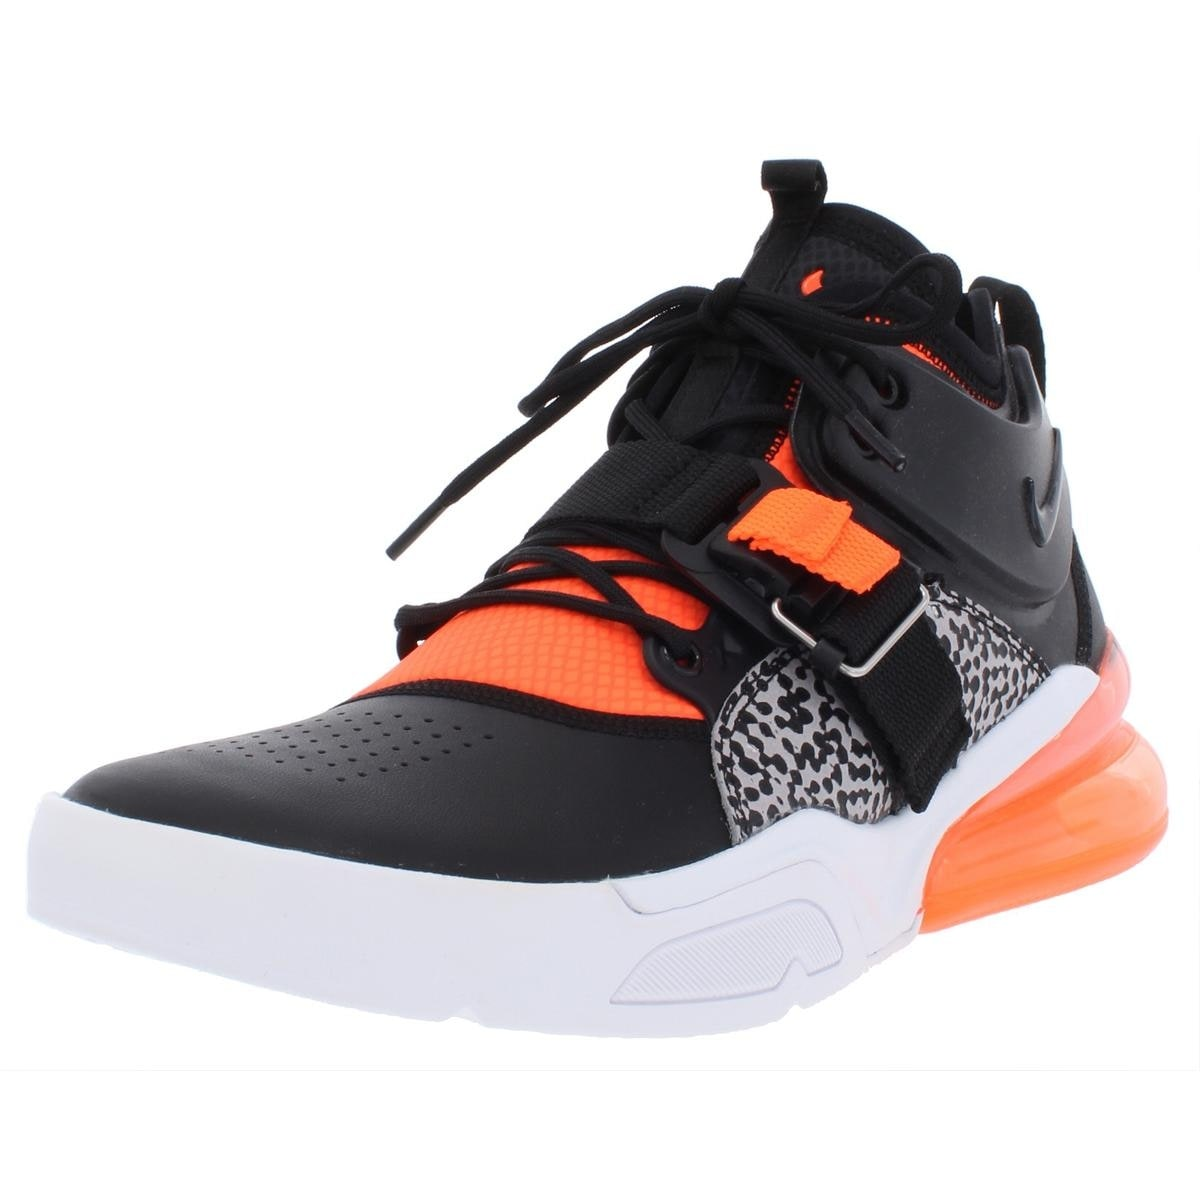 Details about Nike Men's Air Force 270 Basketball Shoes